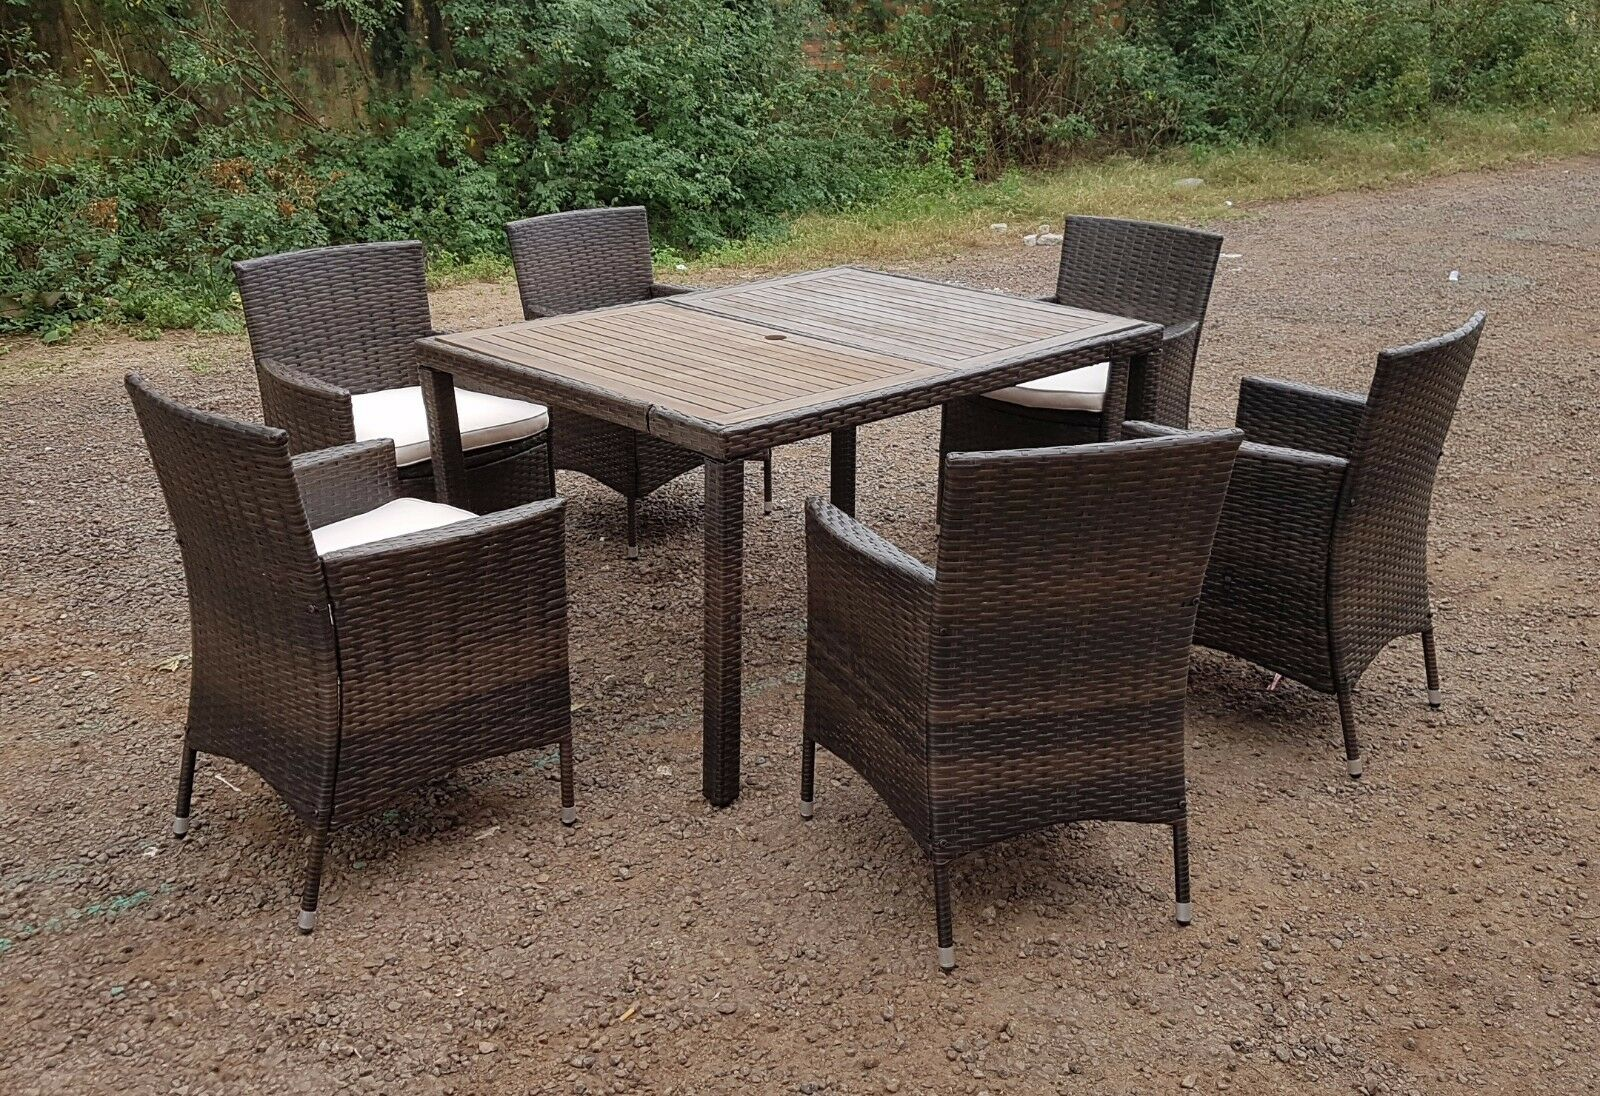 RATTAN WICKER CONSERVATORY OUTDOOR GARDEN FURNITURE PATIO